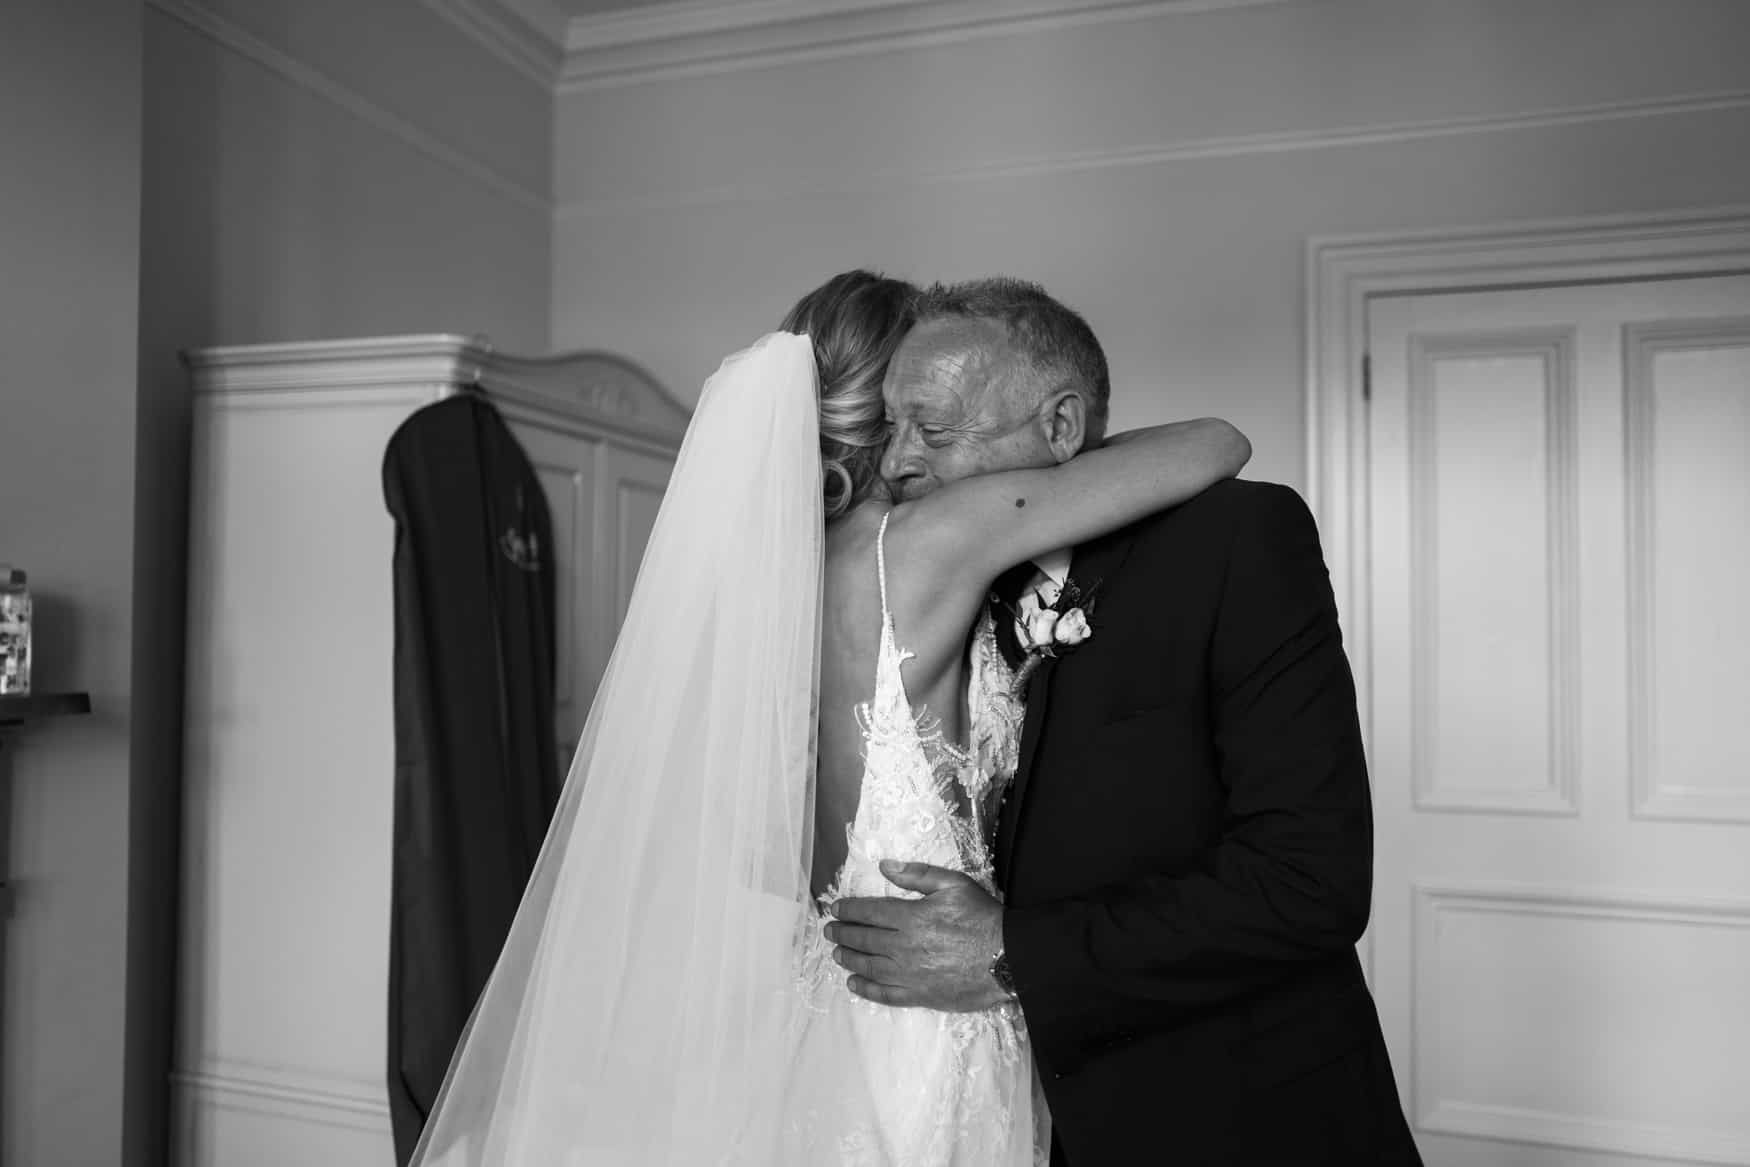 dad see's bride for the first time